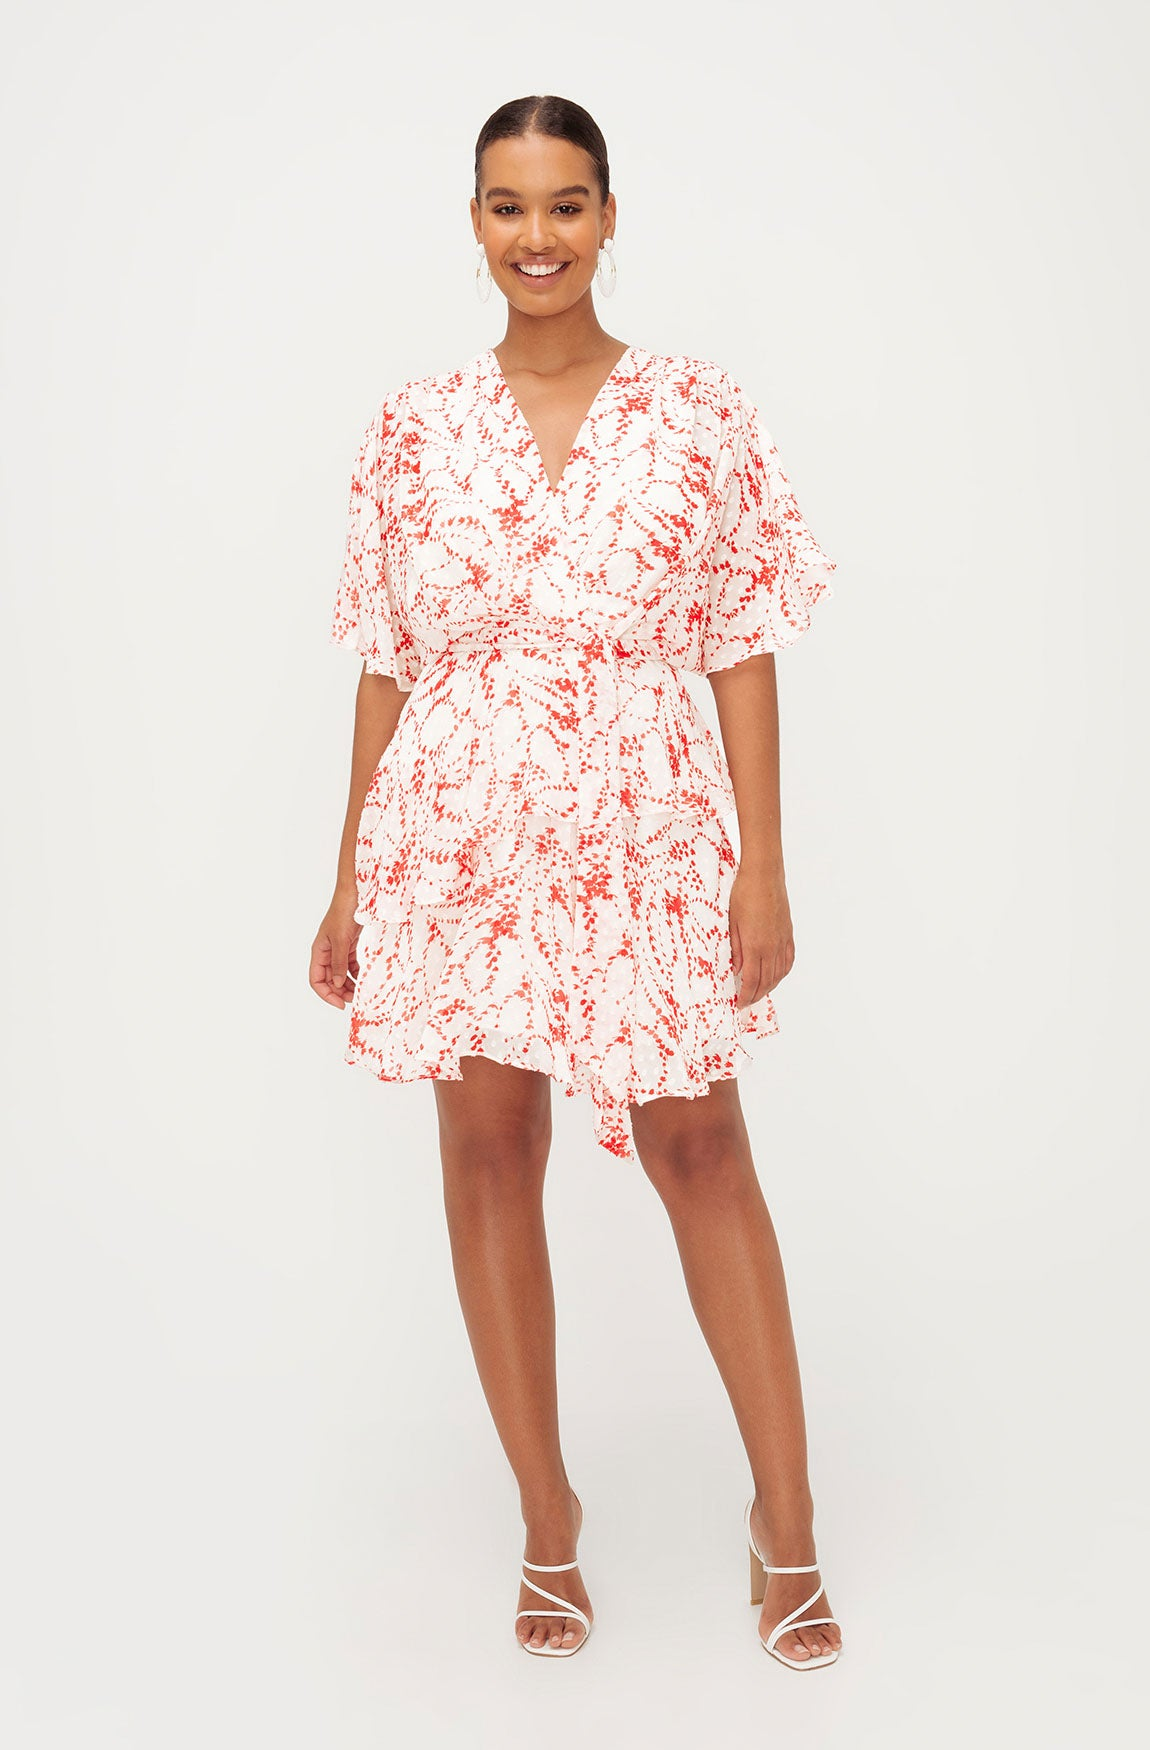 HENLEY FLORAL DRESS